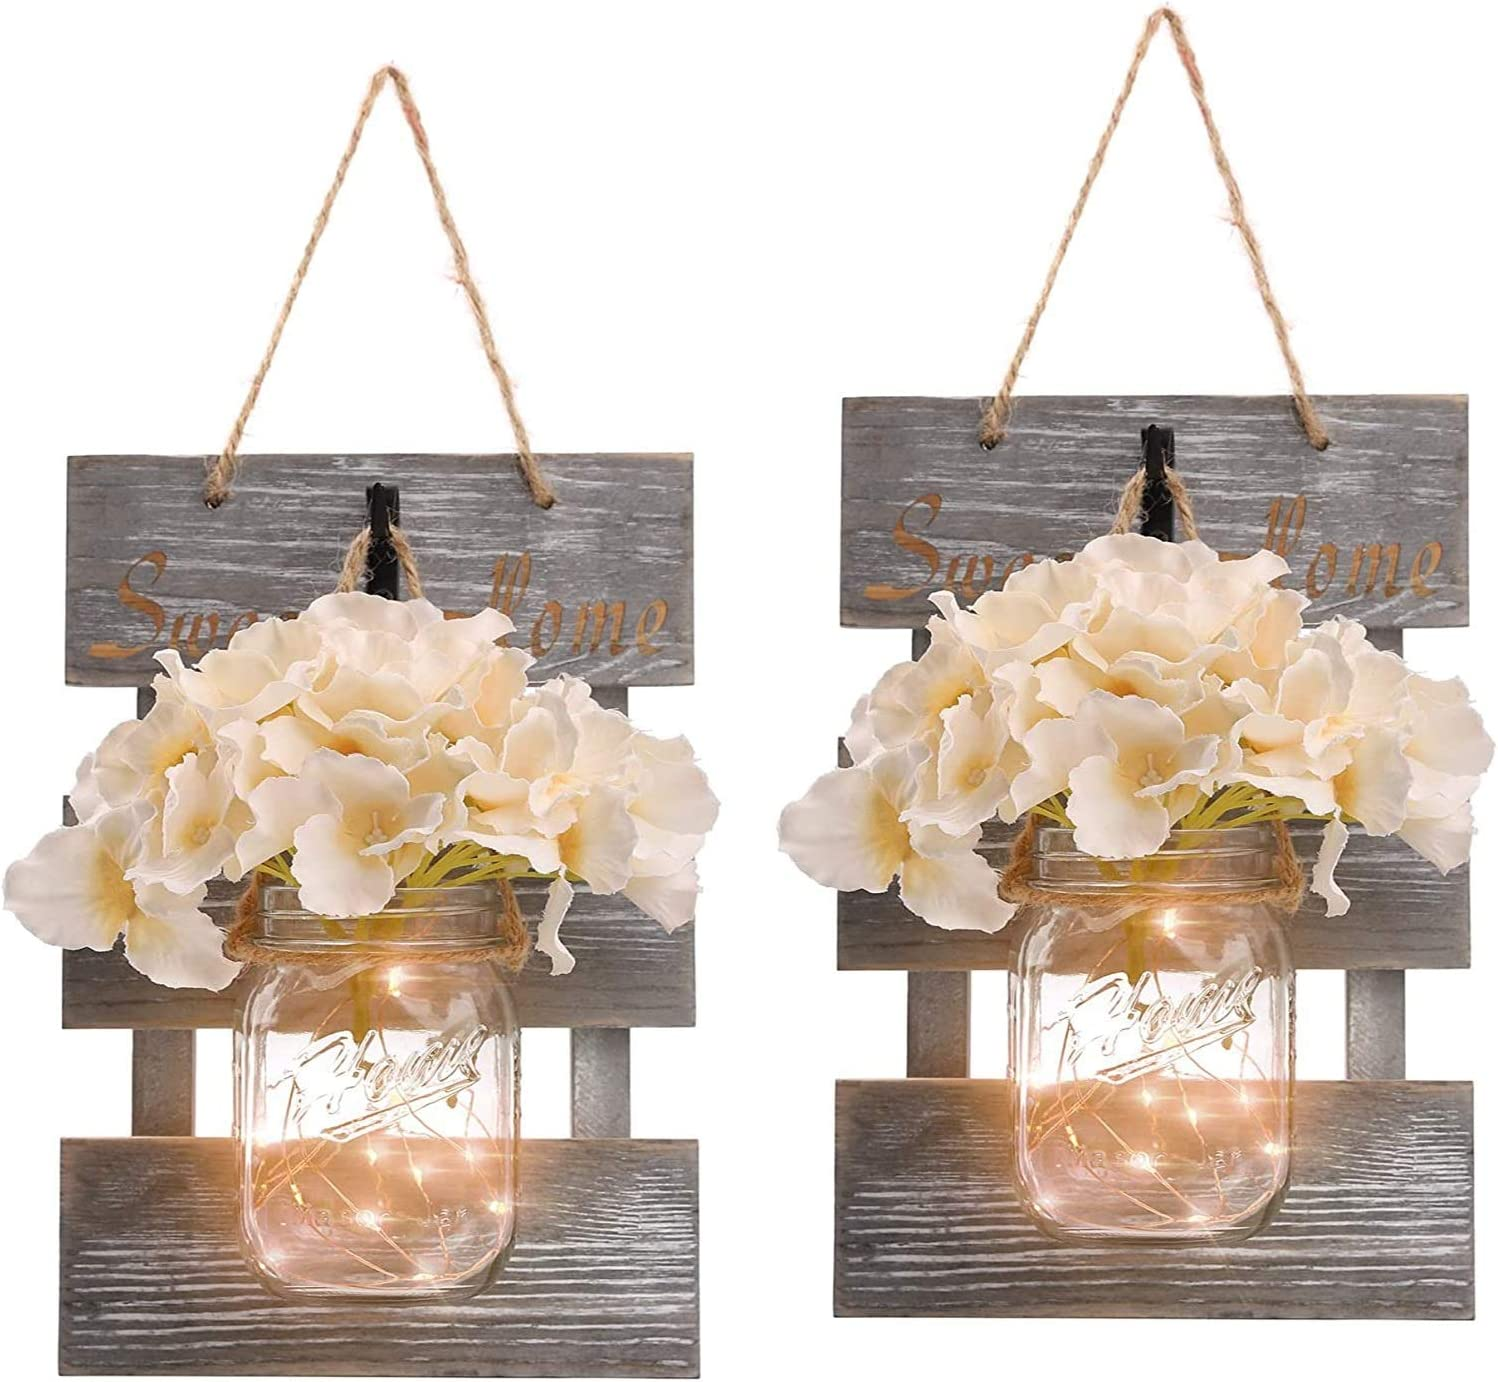 Mason Jar Sconces Wall Decor- Cdong Decorative Chic Hanging Mason Jars with LED Strip Lights, 6-Hour Timer, Silk Hydrangea, Iron Hooks for Home,Living Room,Bedroom Decorations [Set of 2], Grey